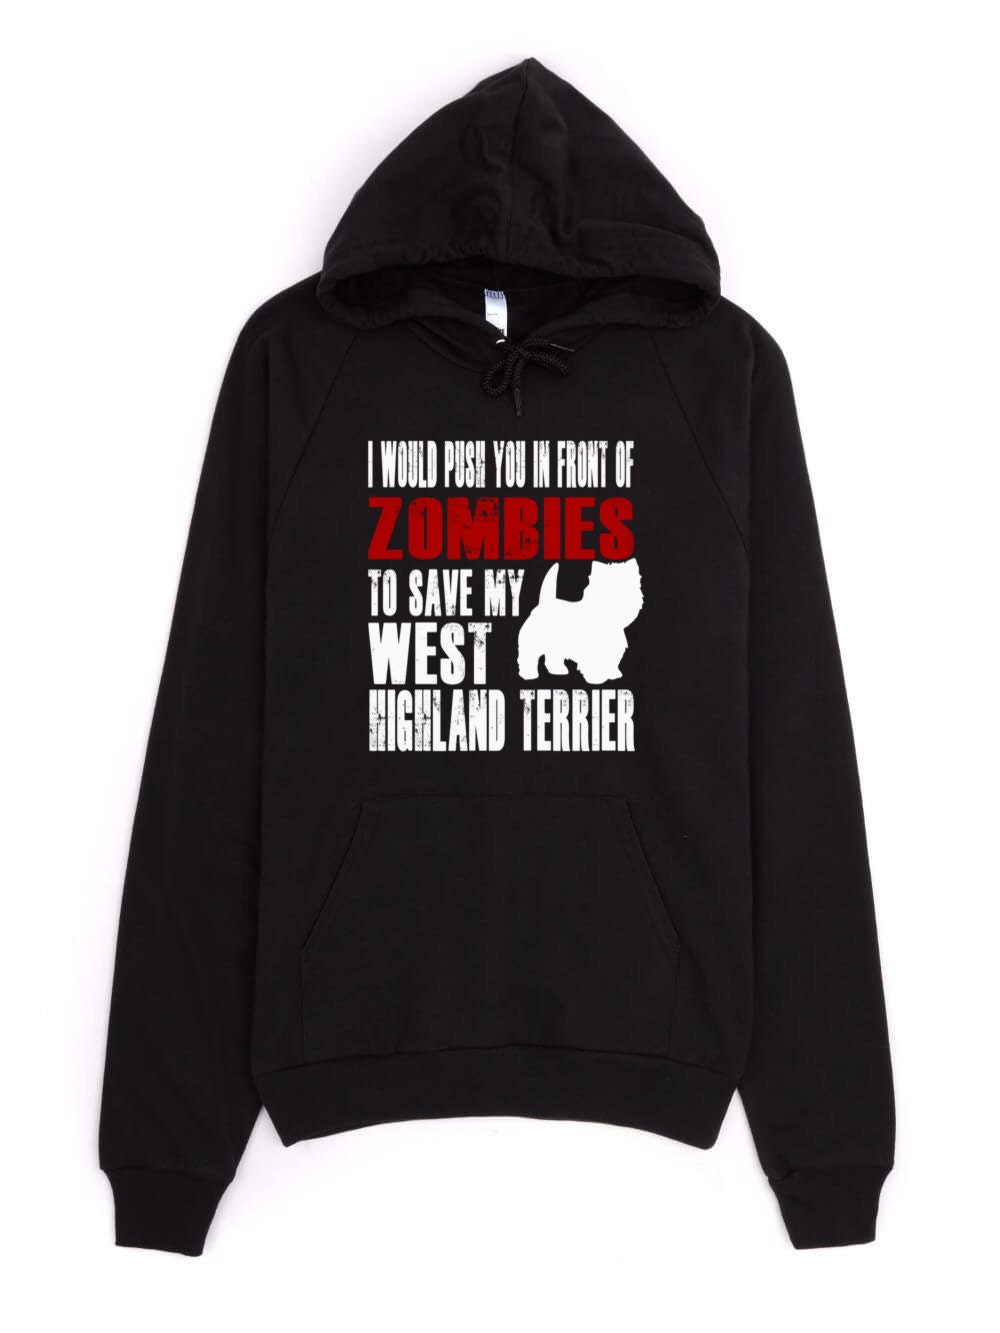 West Highland Terrier Sweatshirt - I Would Push You In Front Of Zombies To Save My West Highland Terrier - My Dog Westie Hoodie